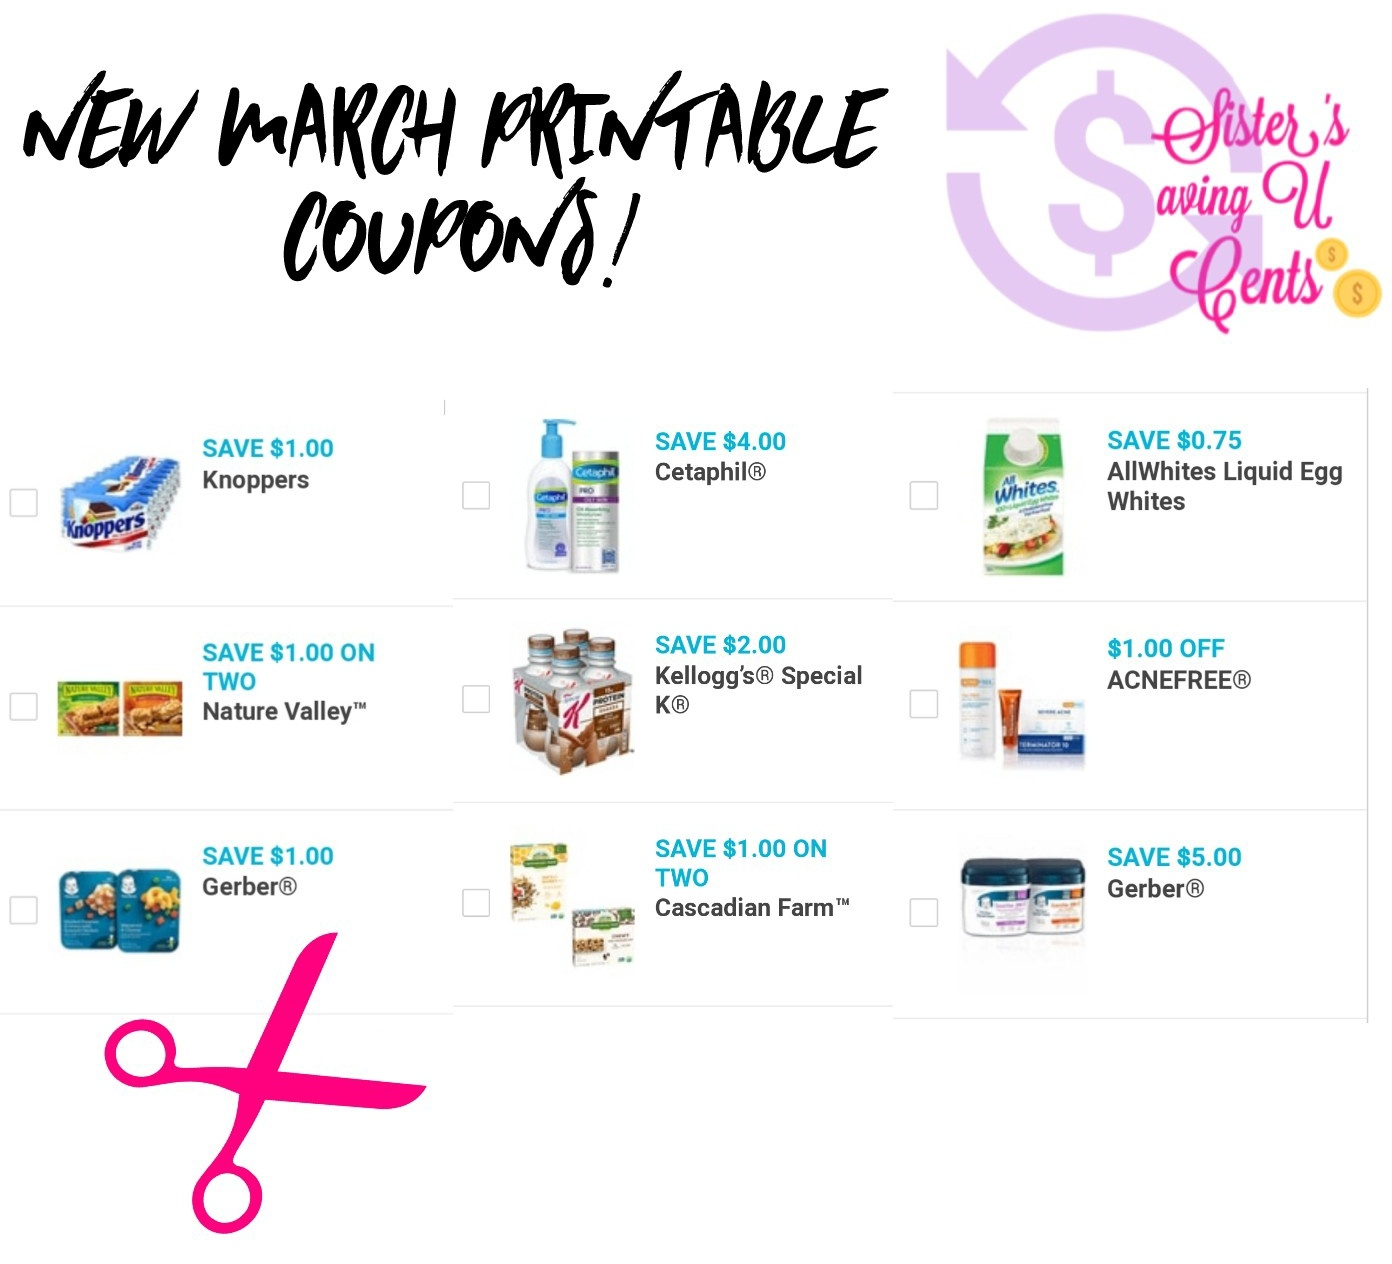 New March Printables Coupons!! - Acne Free Coupons Printable